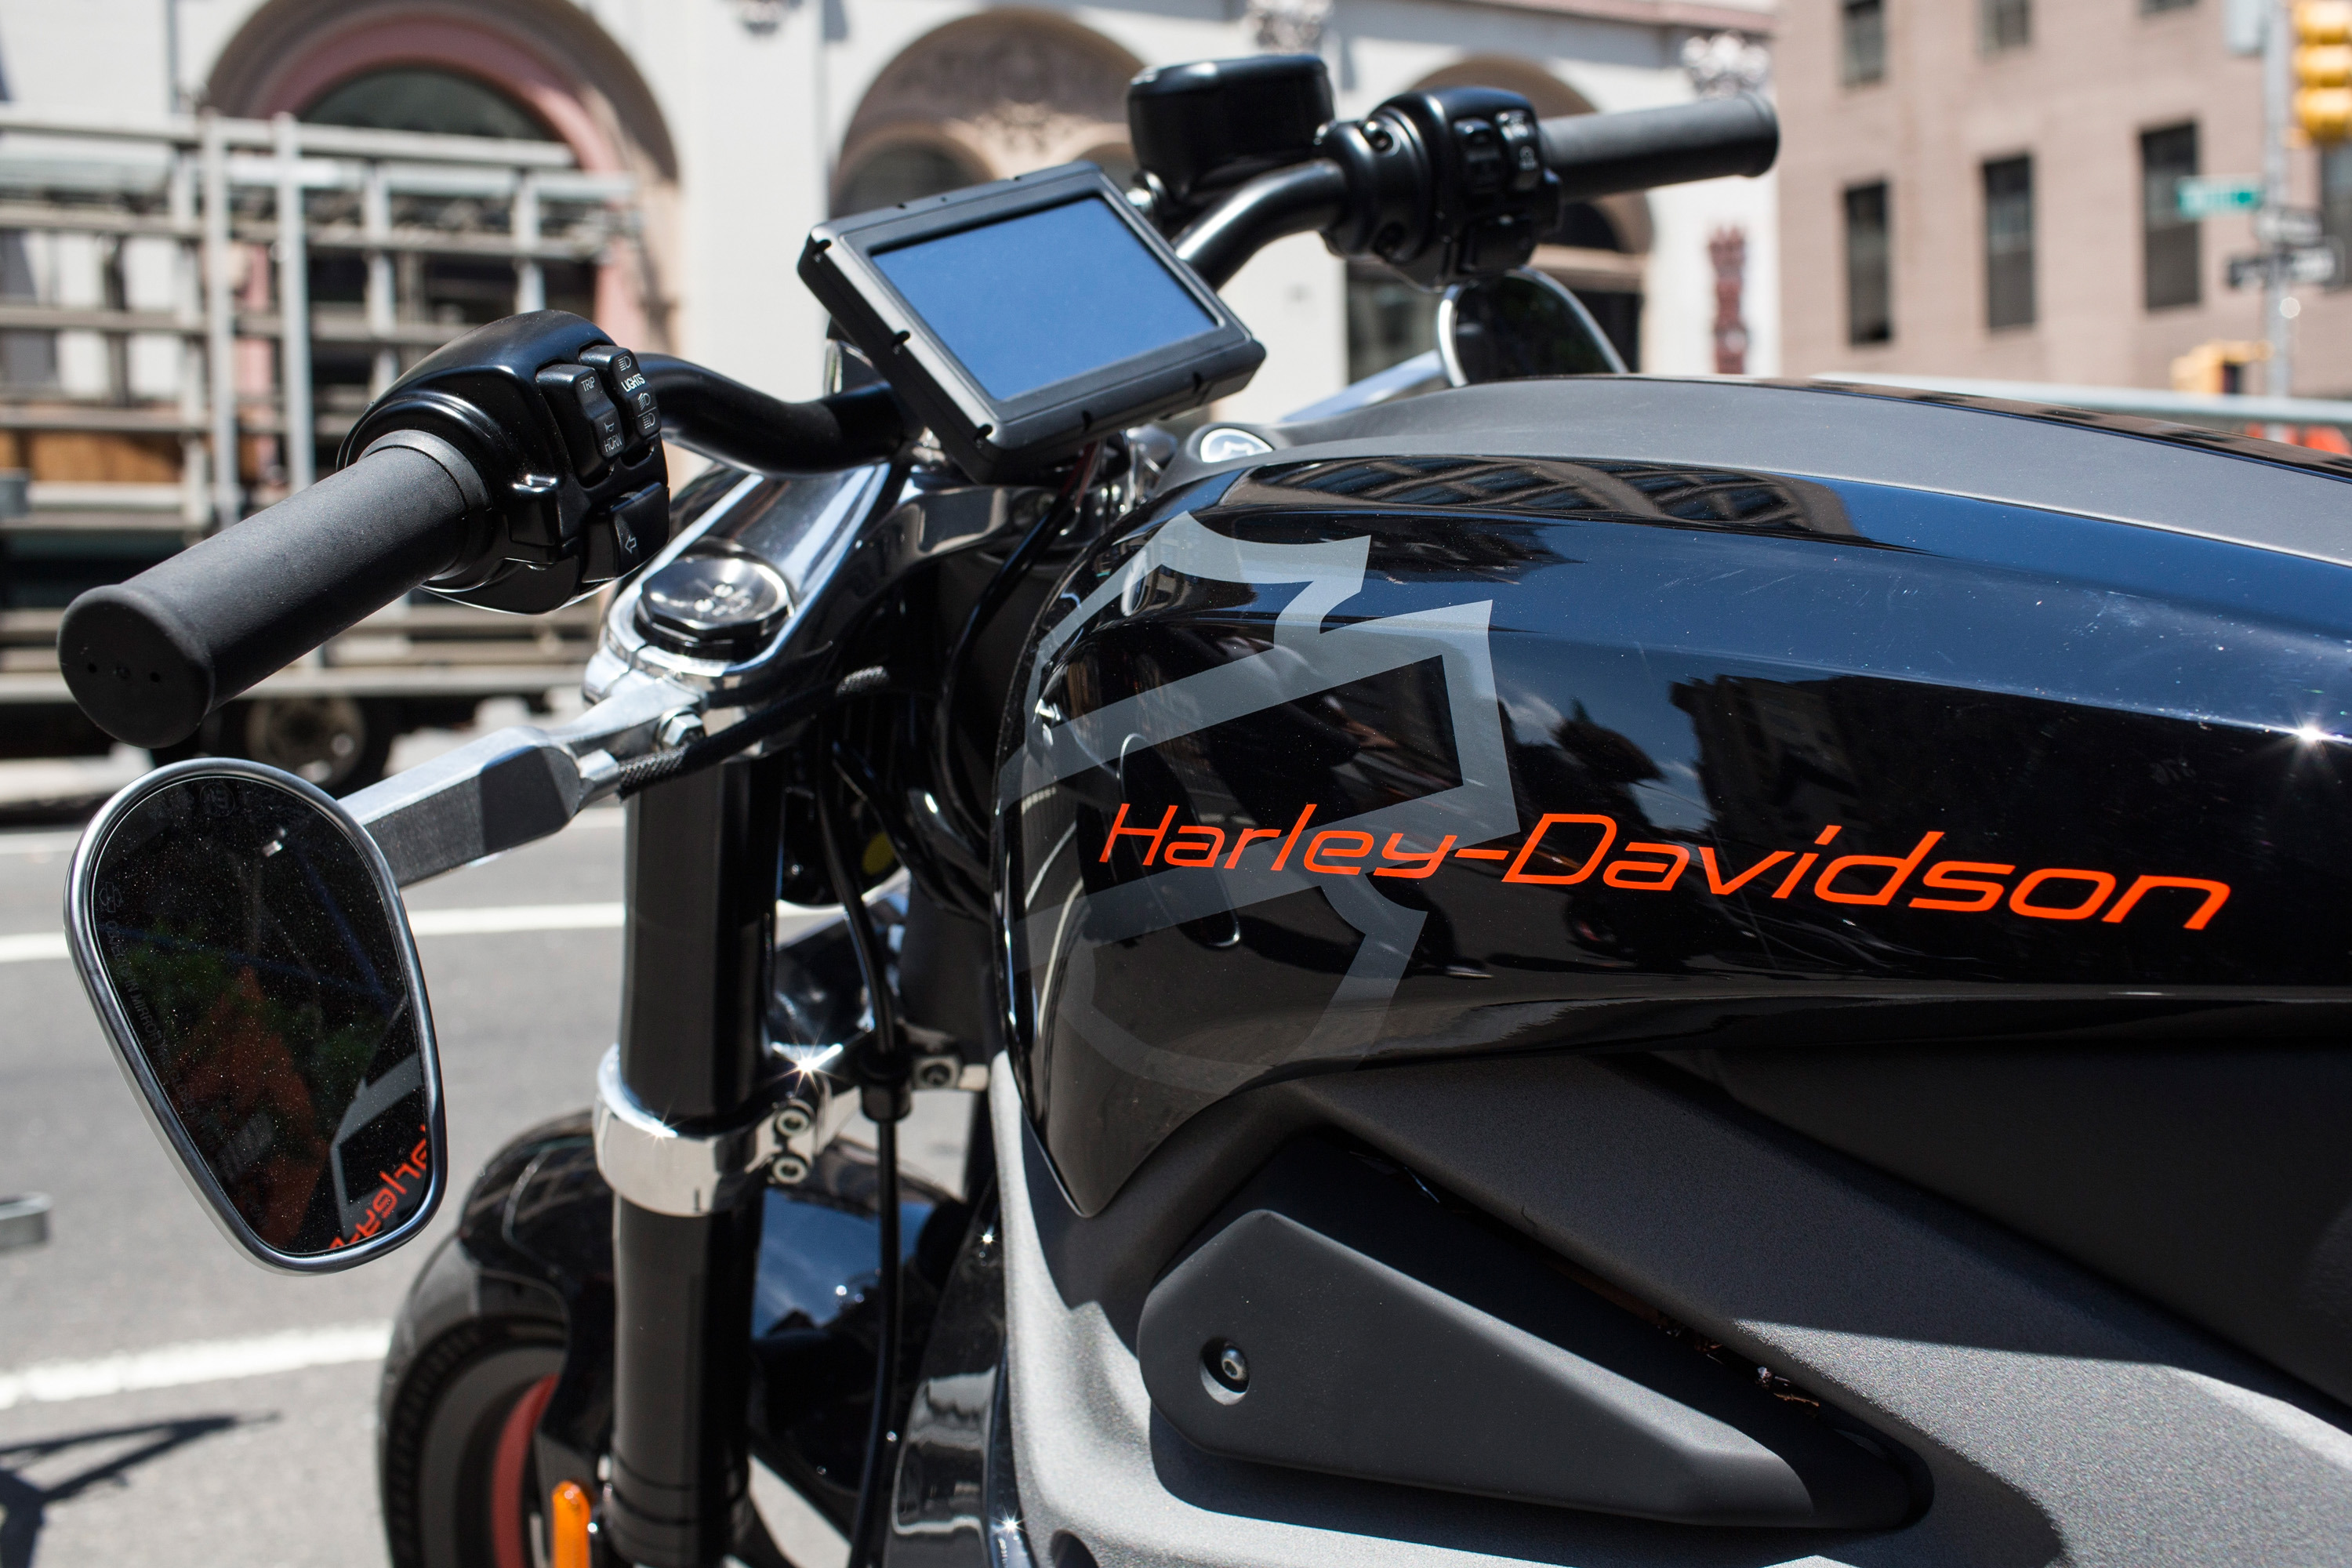 A Harley Davidson Livewire motorcycle, Harley Davidson's first electric bike, sits on display outside the Harley Davidson Store on June 23, 2014 in New York City.